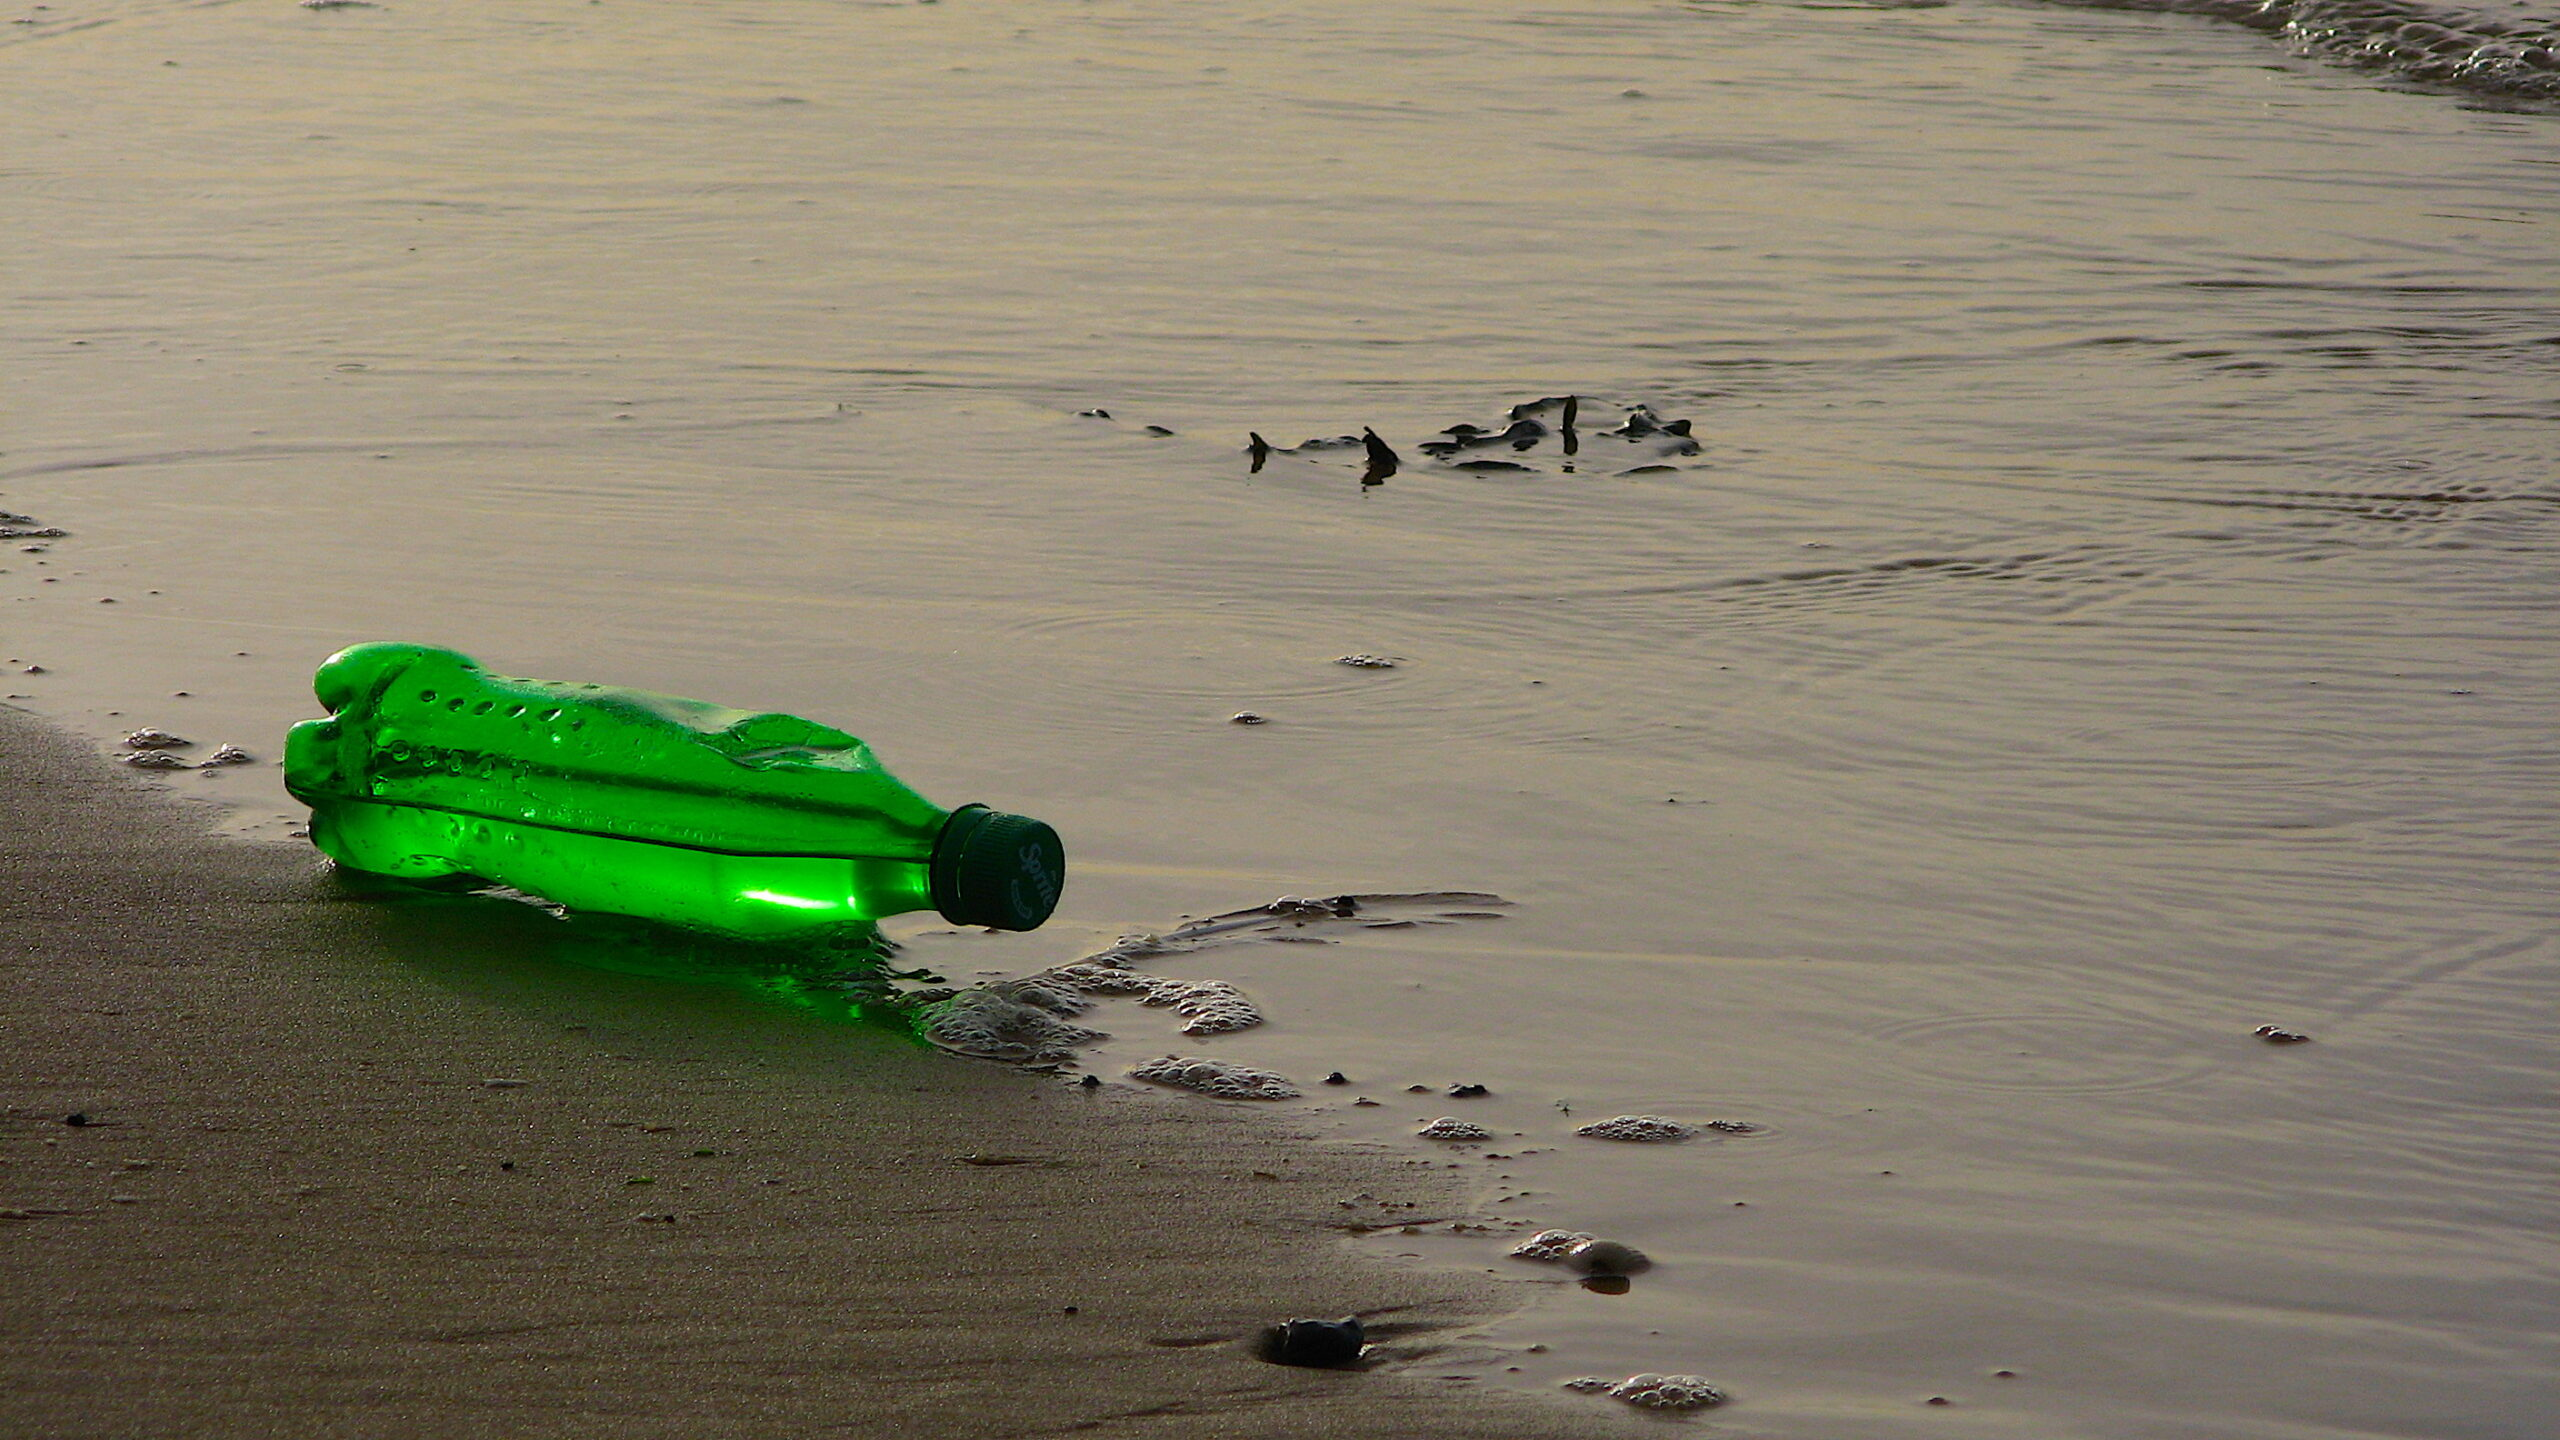 image: plastic bottle. Photograph by Falken, CC-BY-SA 2.5 (edited).